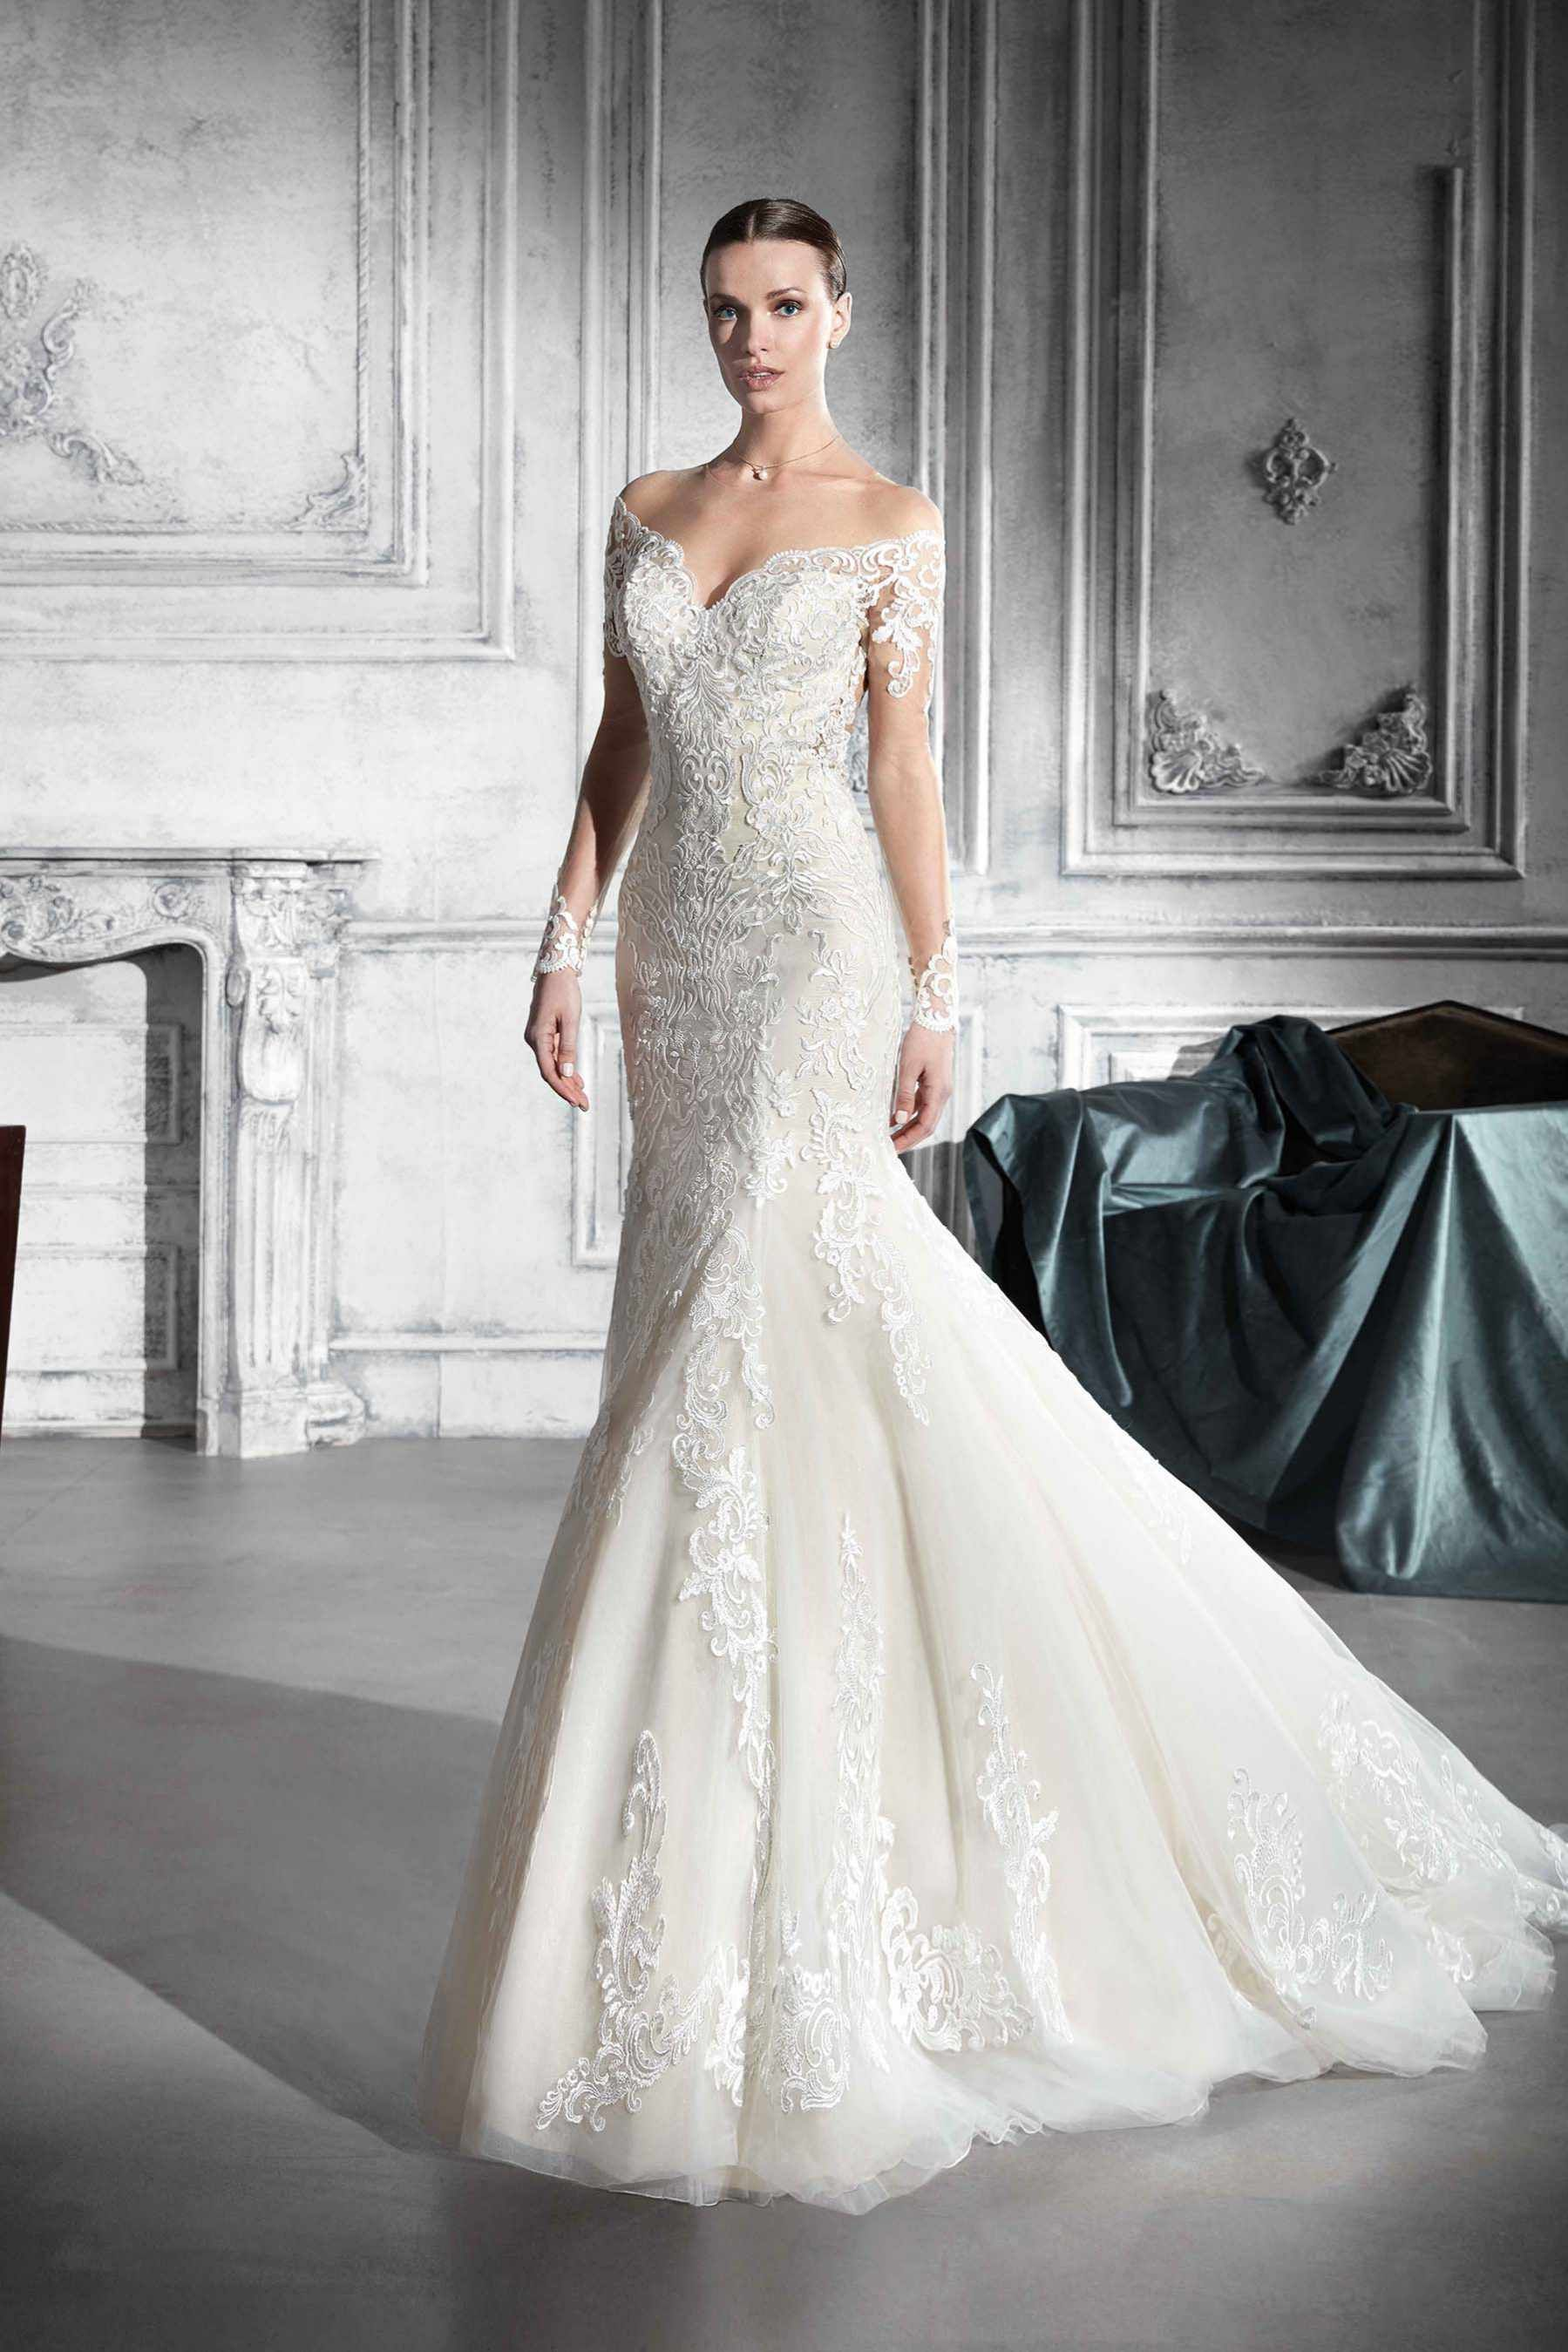 Demetrios wedding dress style this demetrios design defines